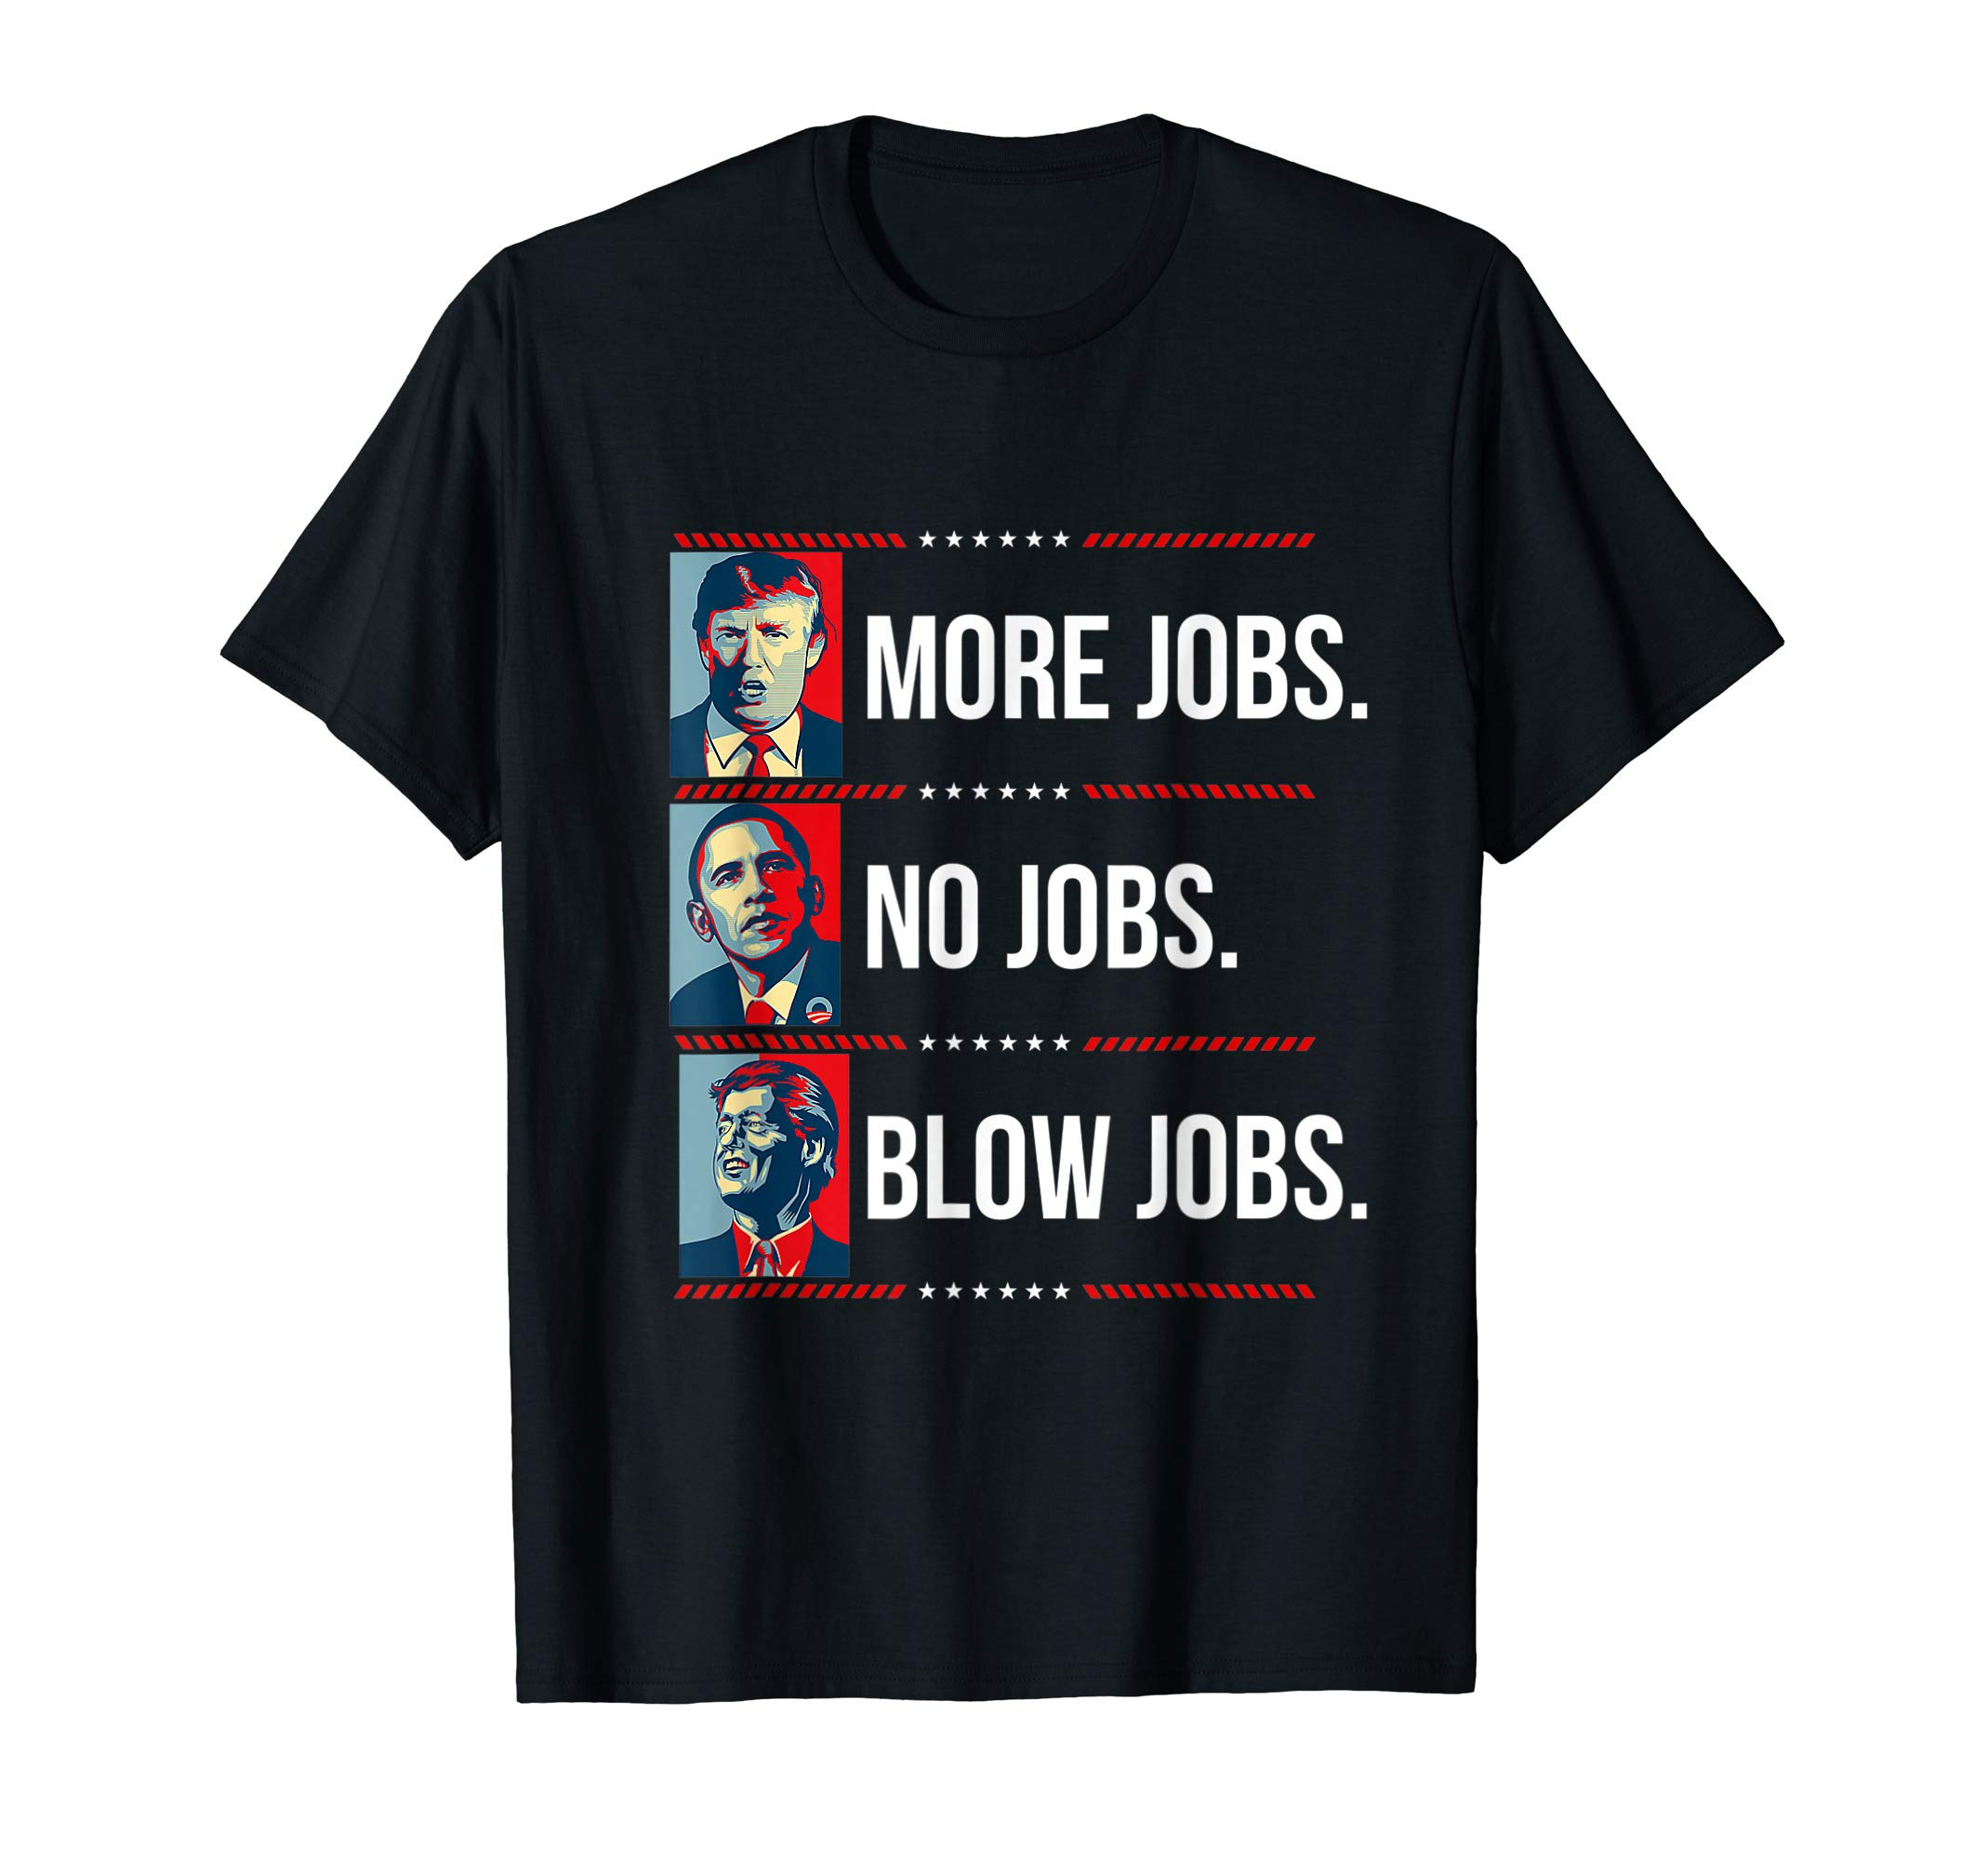 Trump More Jobs Obama No Jobs Bill Cinton B Jobs Trump...